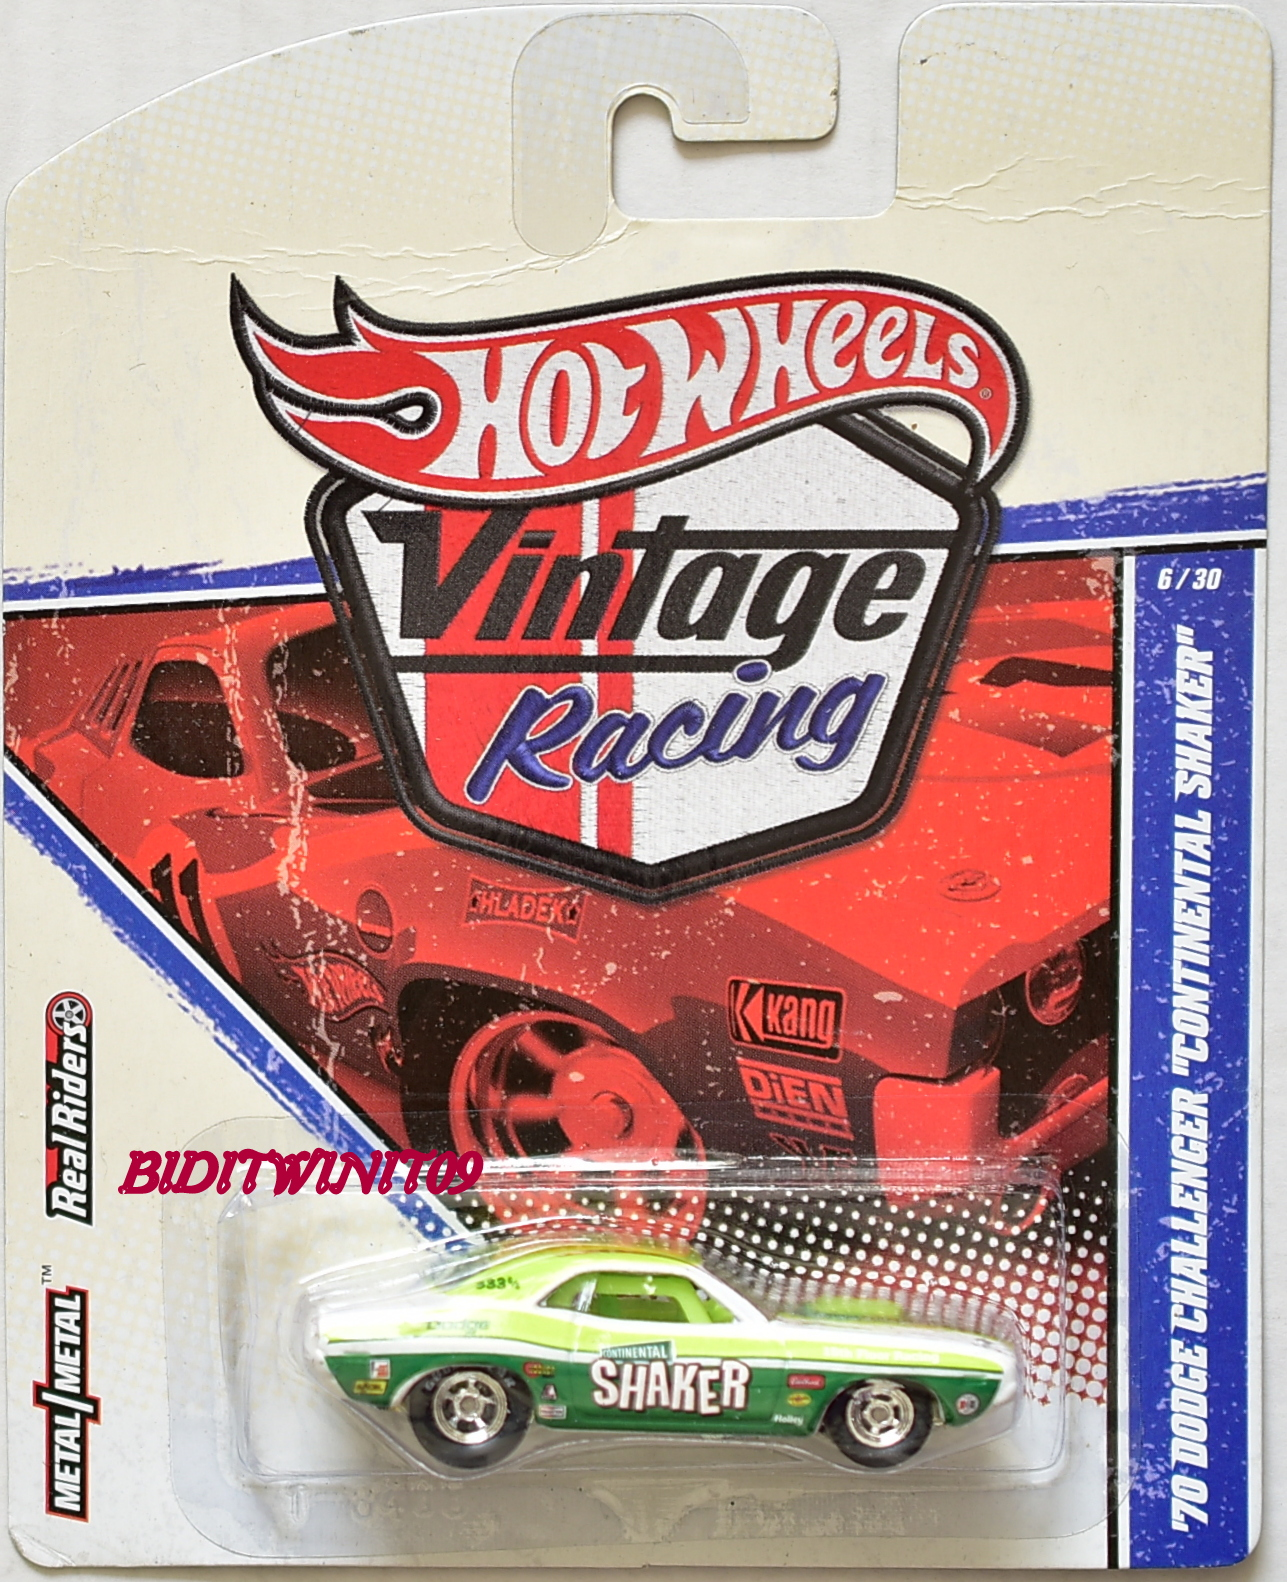 HOT WHEELS VINTAGE RACING '70 DODGE CHALLENGER CONTINENTAL SHAKER #6/30 E+